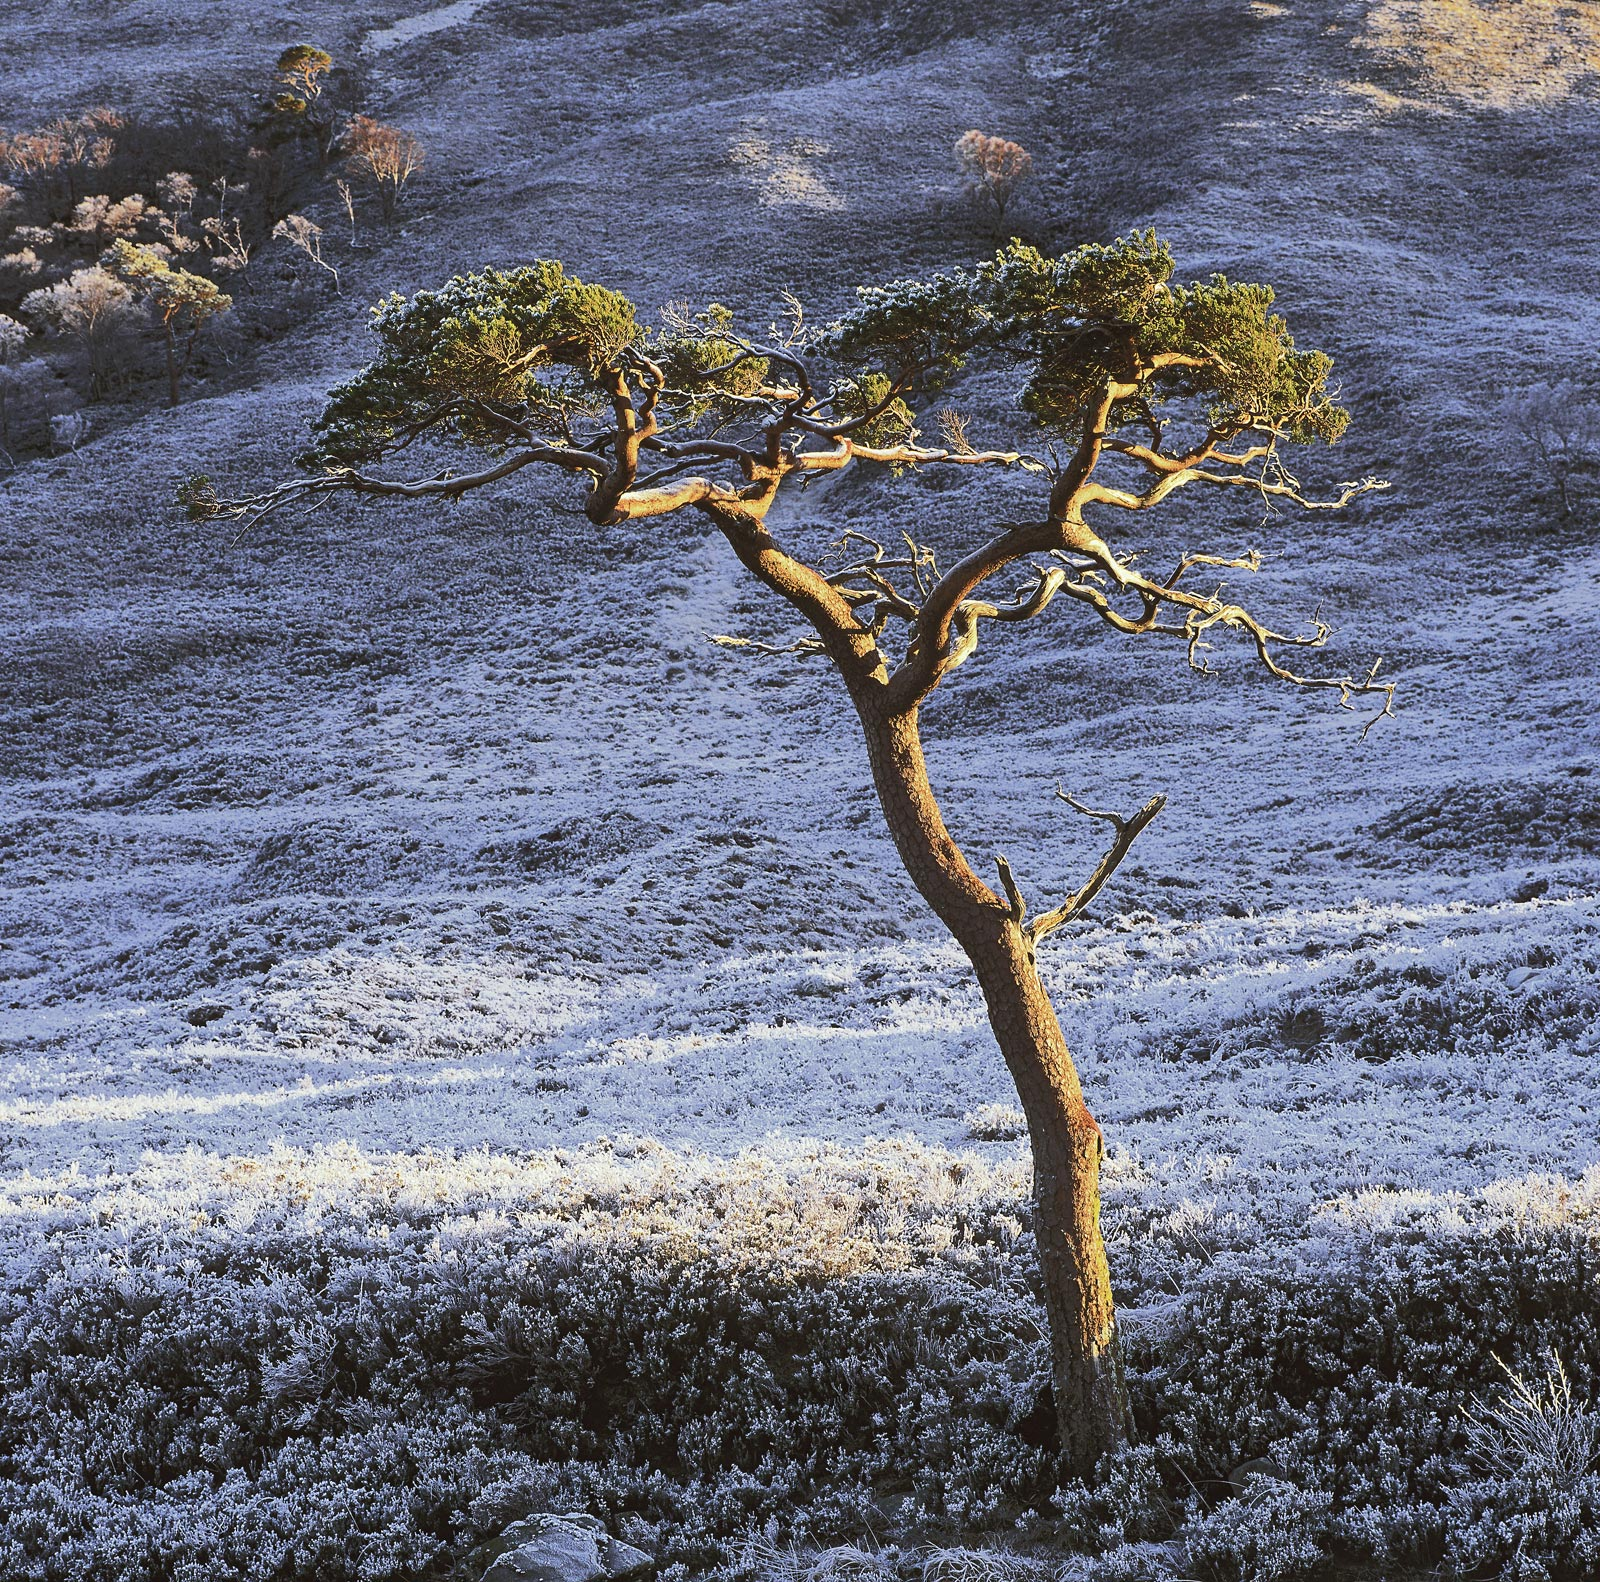 There are not many strongholds for this most beautiful of native Scottish trees but in Torridon there are still a good few clustered...